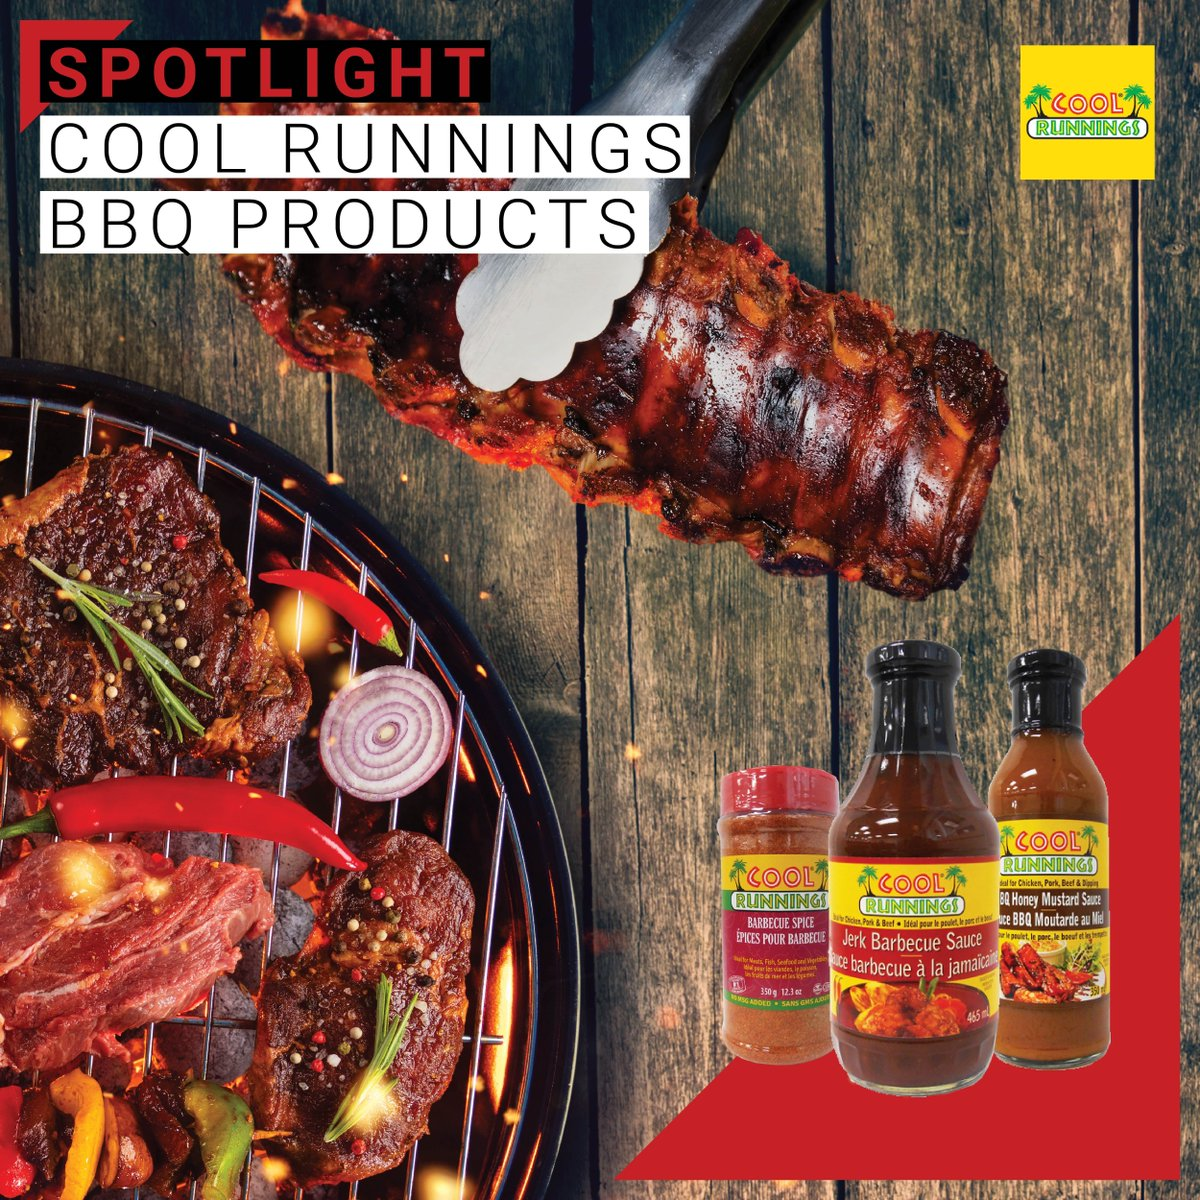 Not sure what to get your Dad for Father's day? What about Cool Runnings tasty Barbecue products? Your father will love it!  #bbqsauce #bbqseason #eatons #eatonsjamaica #coolrunningsfoods #spicysauce #fathersday #jerksauce #honeymustardsauce #caribbean #caribbeanfood